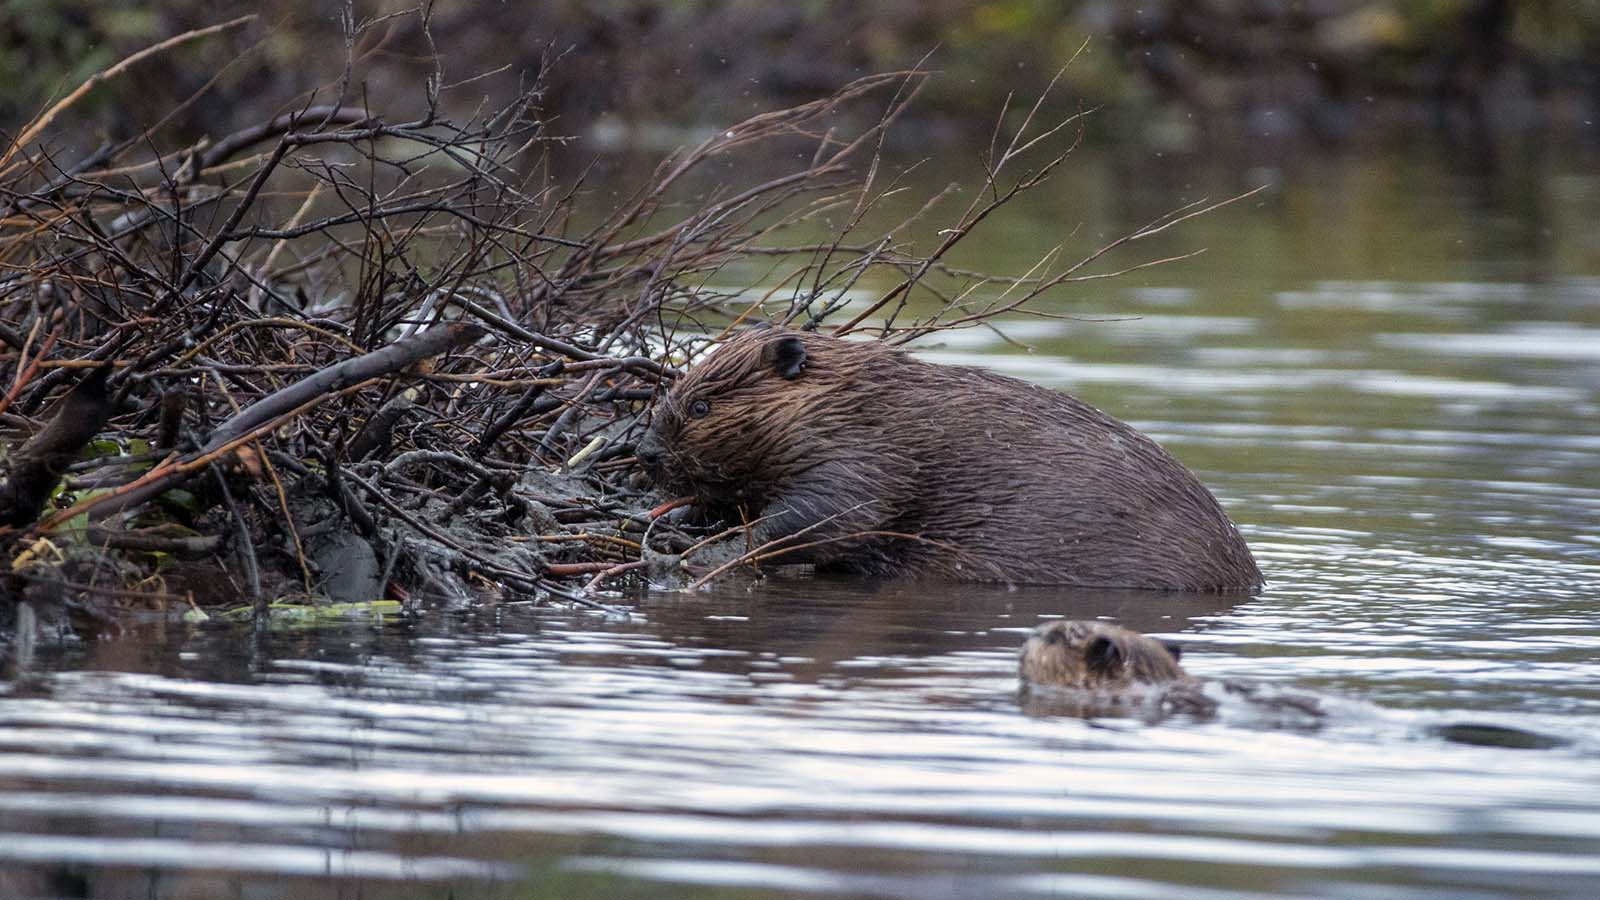 The Unusual Connection Between Beavers, Permafrost and Climate Change